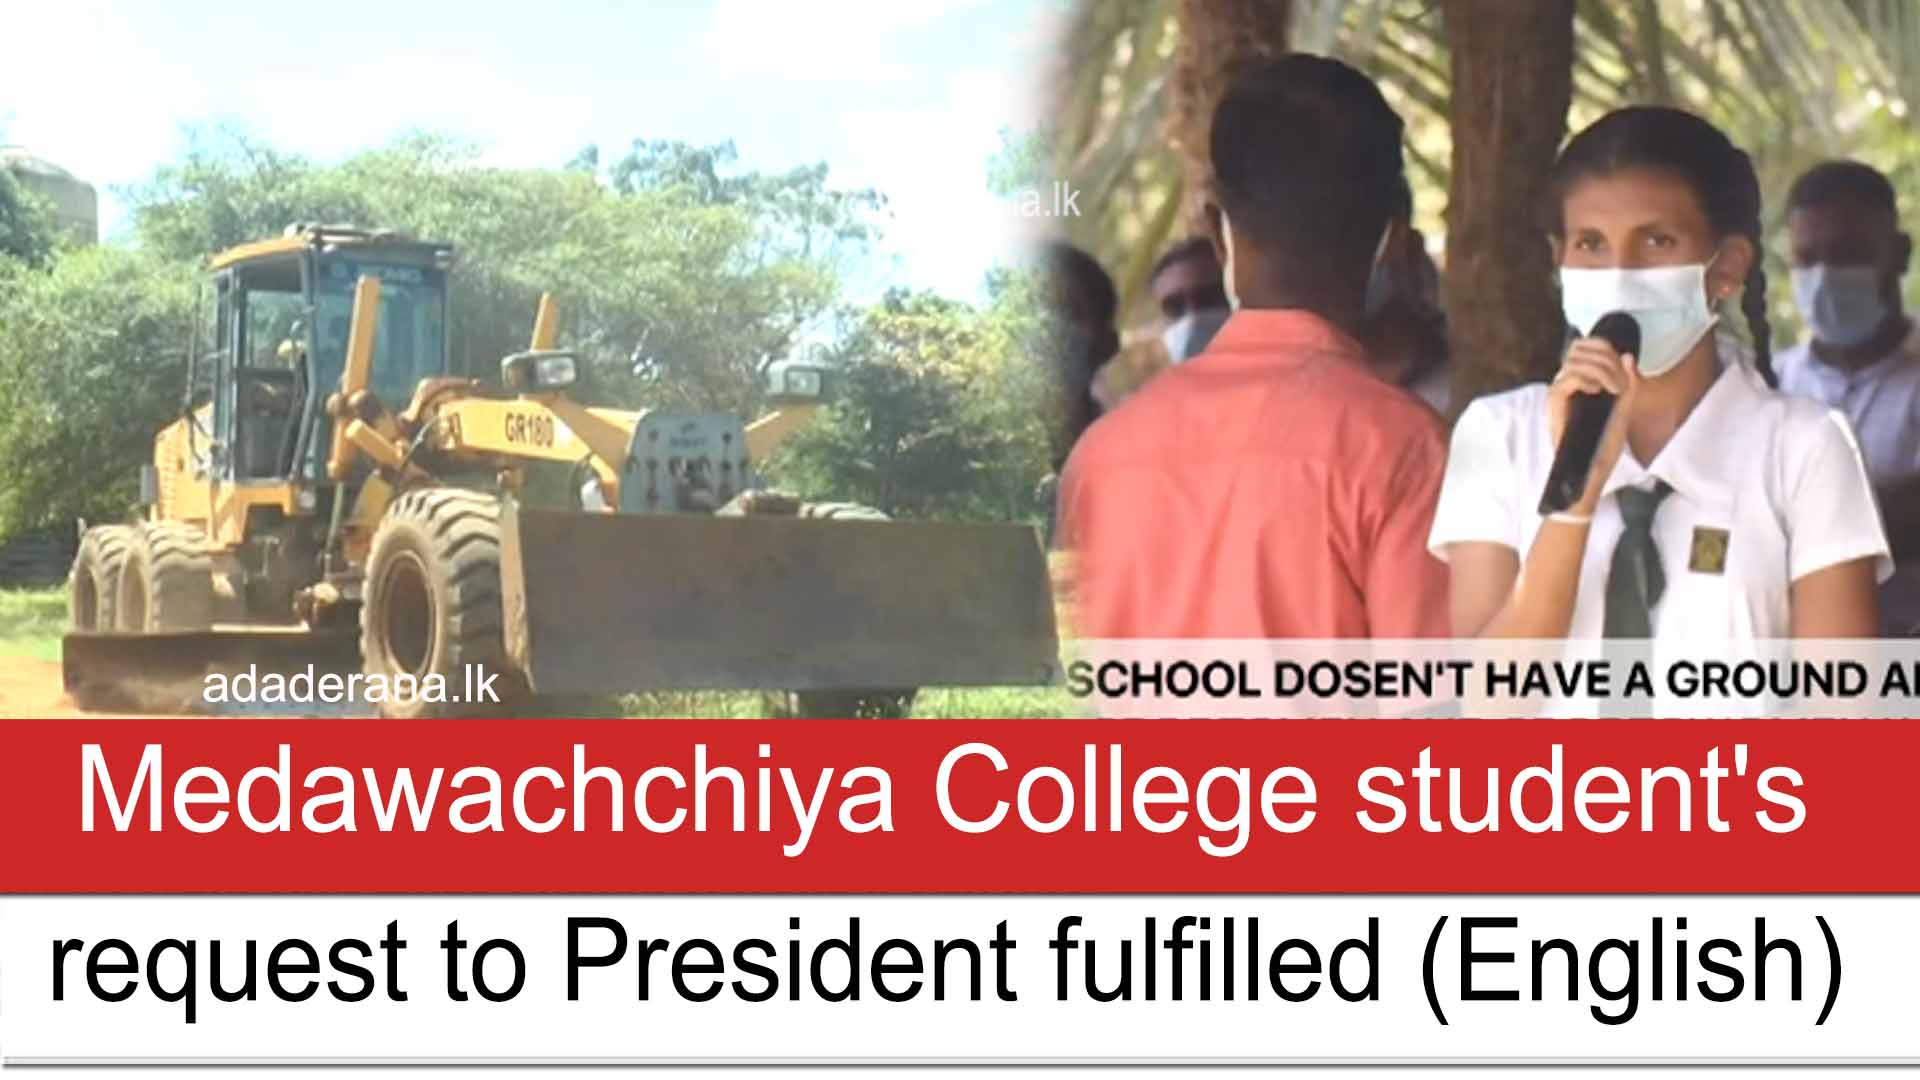 Medawachchiya College student's request to President fulfilled (English)